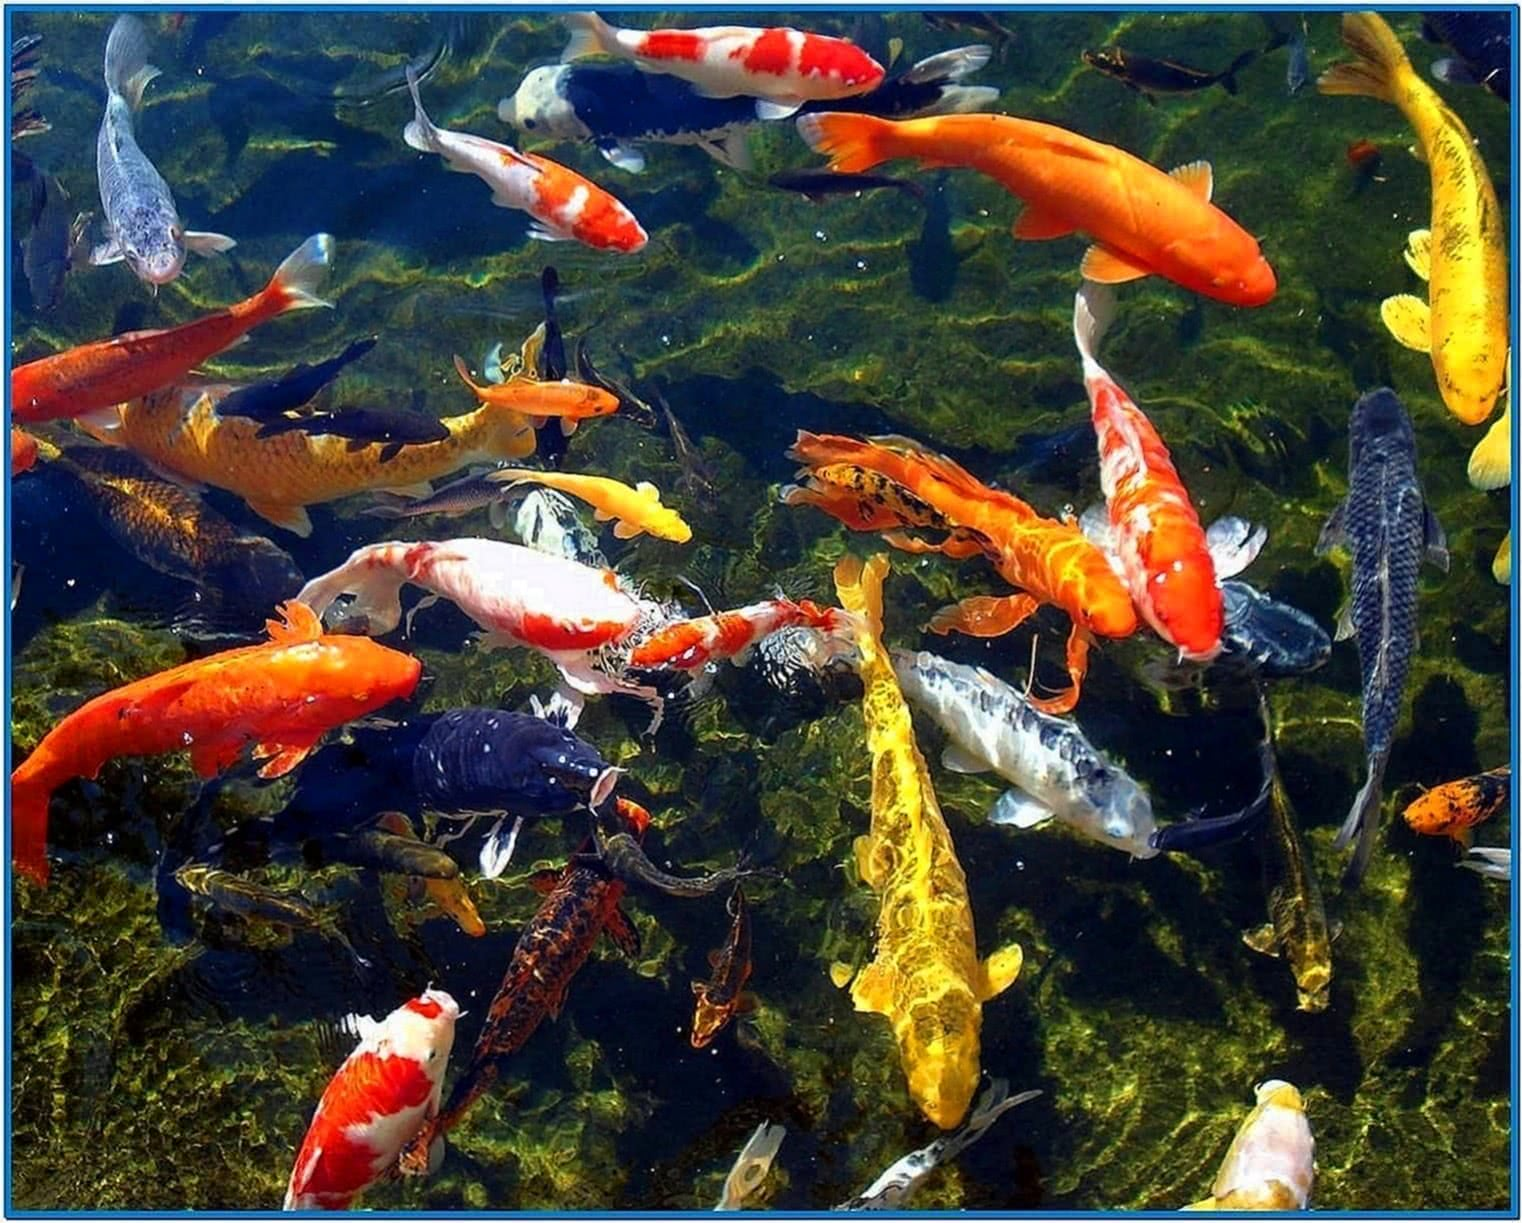 Koi Fish Pond Screensaver Download Free